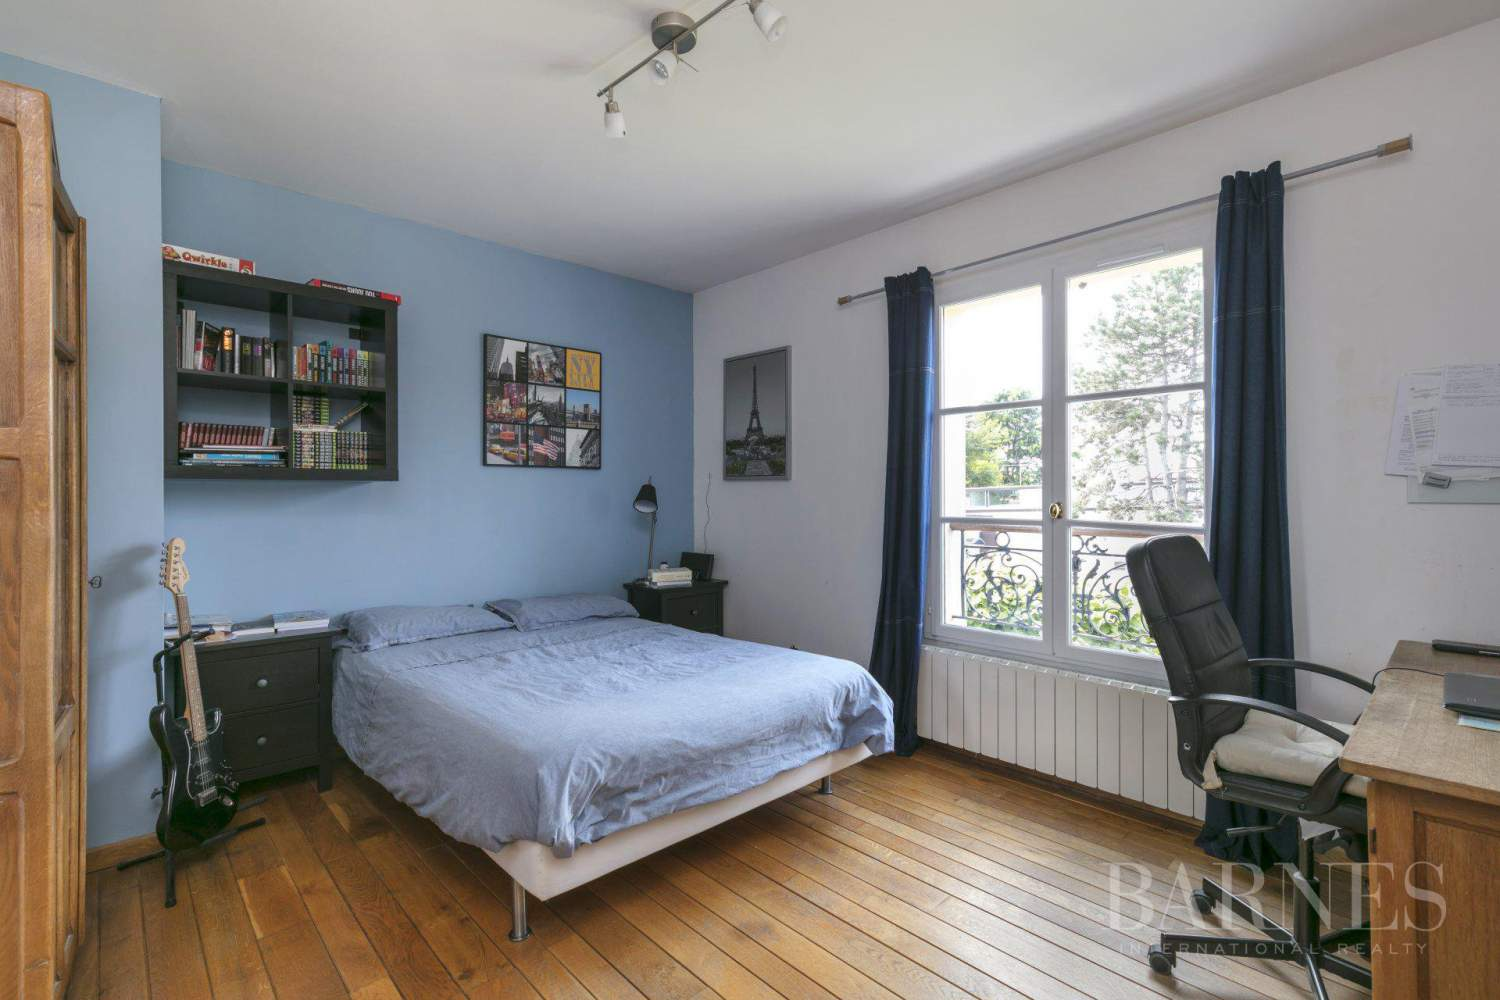 CENTRE OF NOISY-LE-ROI, 330m² (3,552 sq ft) FAMILY HOUSE, 5 BEDROOMS, 500m² (5,382 sq ft), SEPARATE STUDIO picture 4